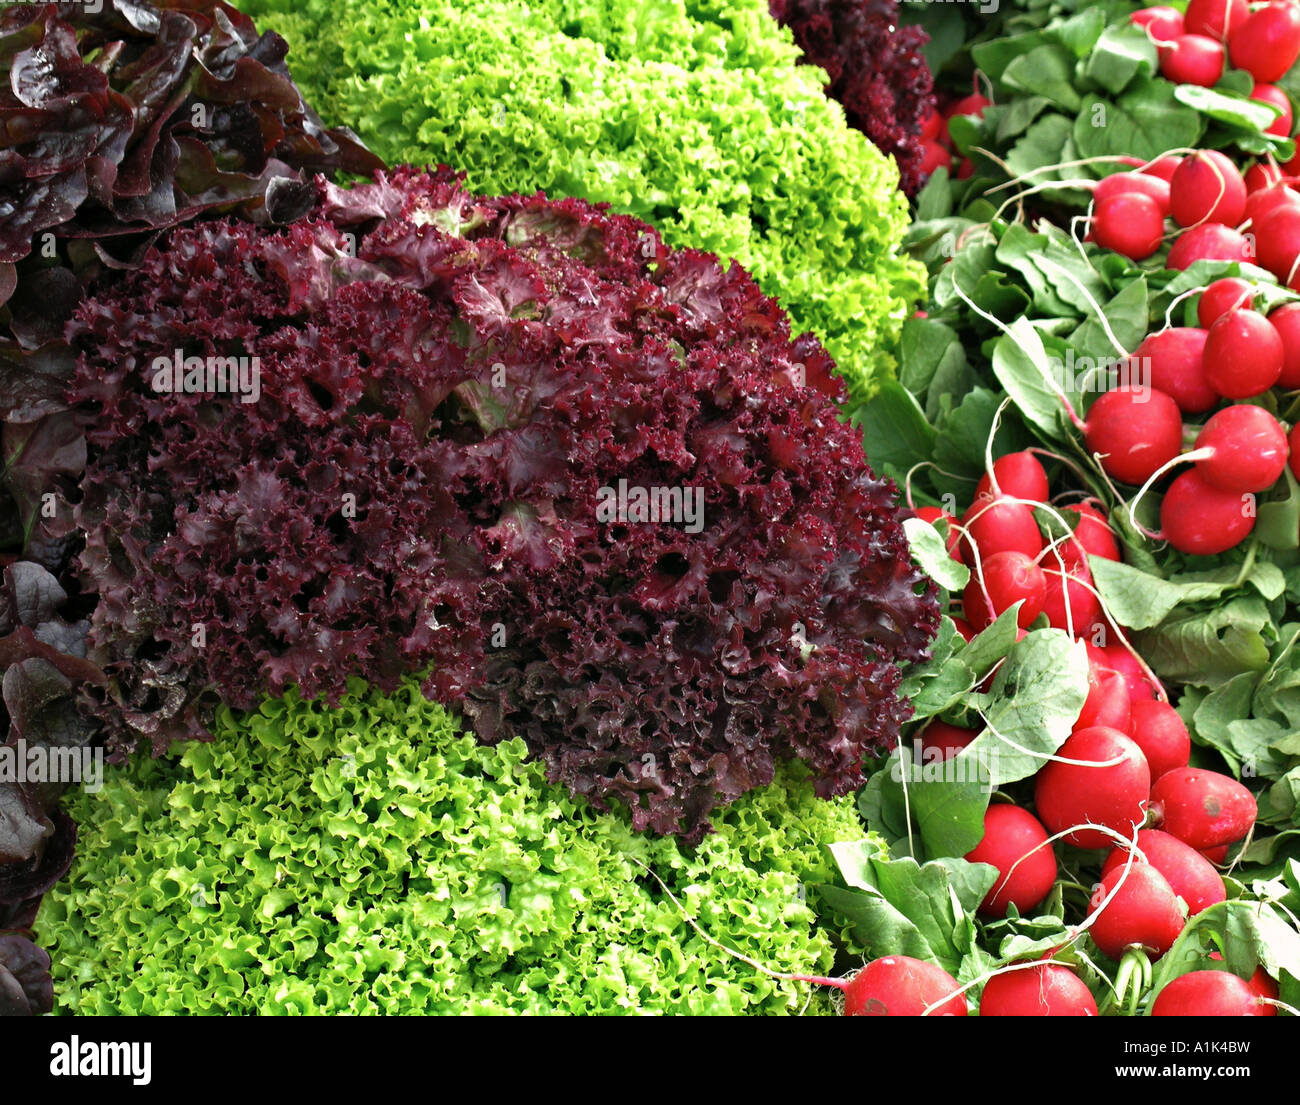 salads and radishes - Stock Image